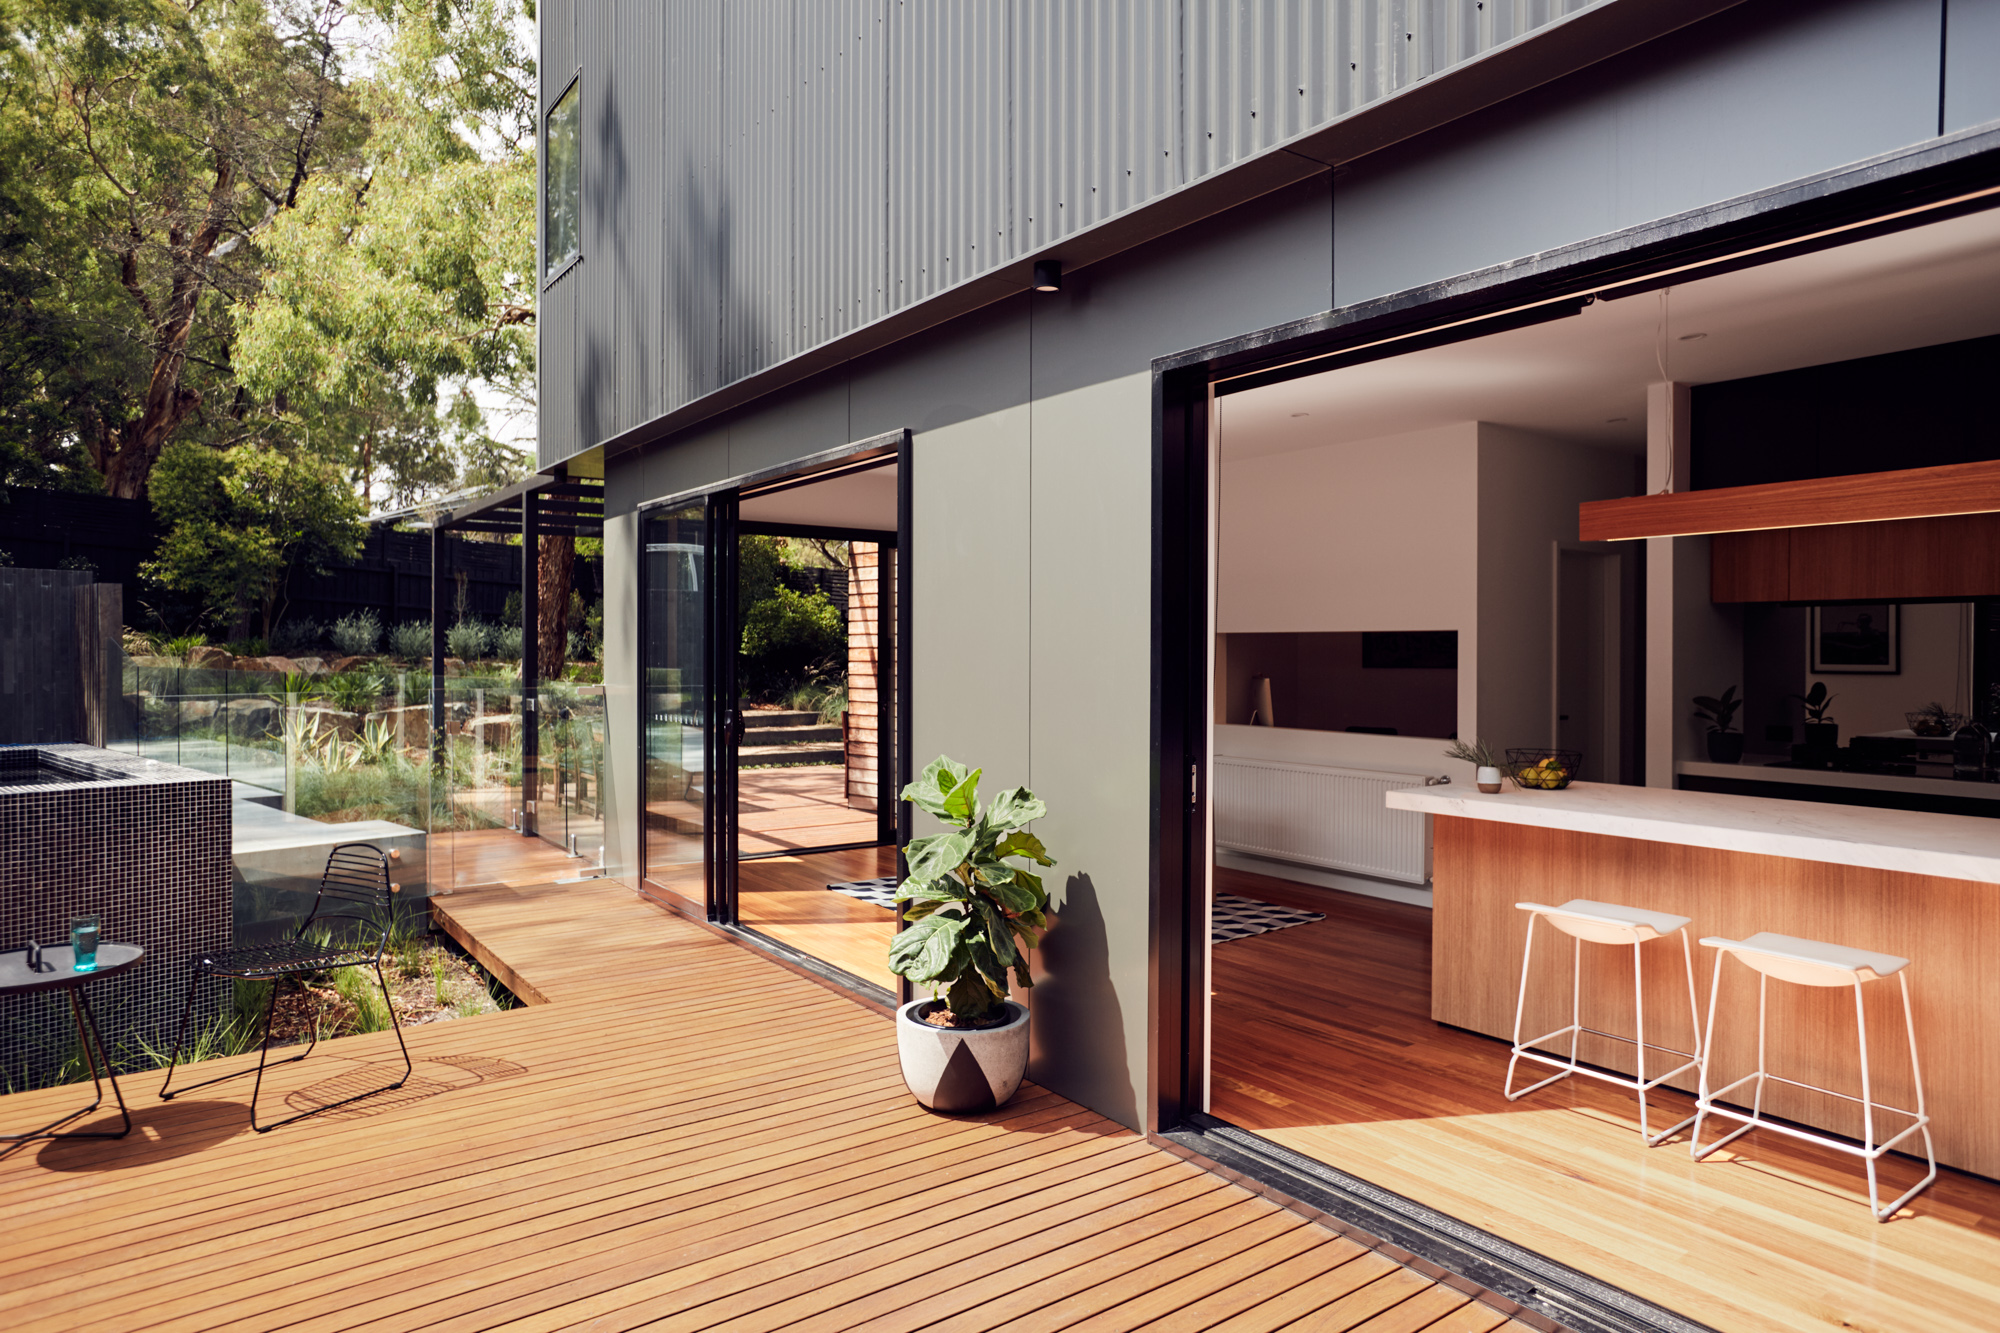 Gallery Of Blackburn House By Archiblox Local Australian Modular Architecture & Interiors Blackburn, Vic Image 7